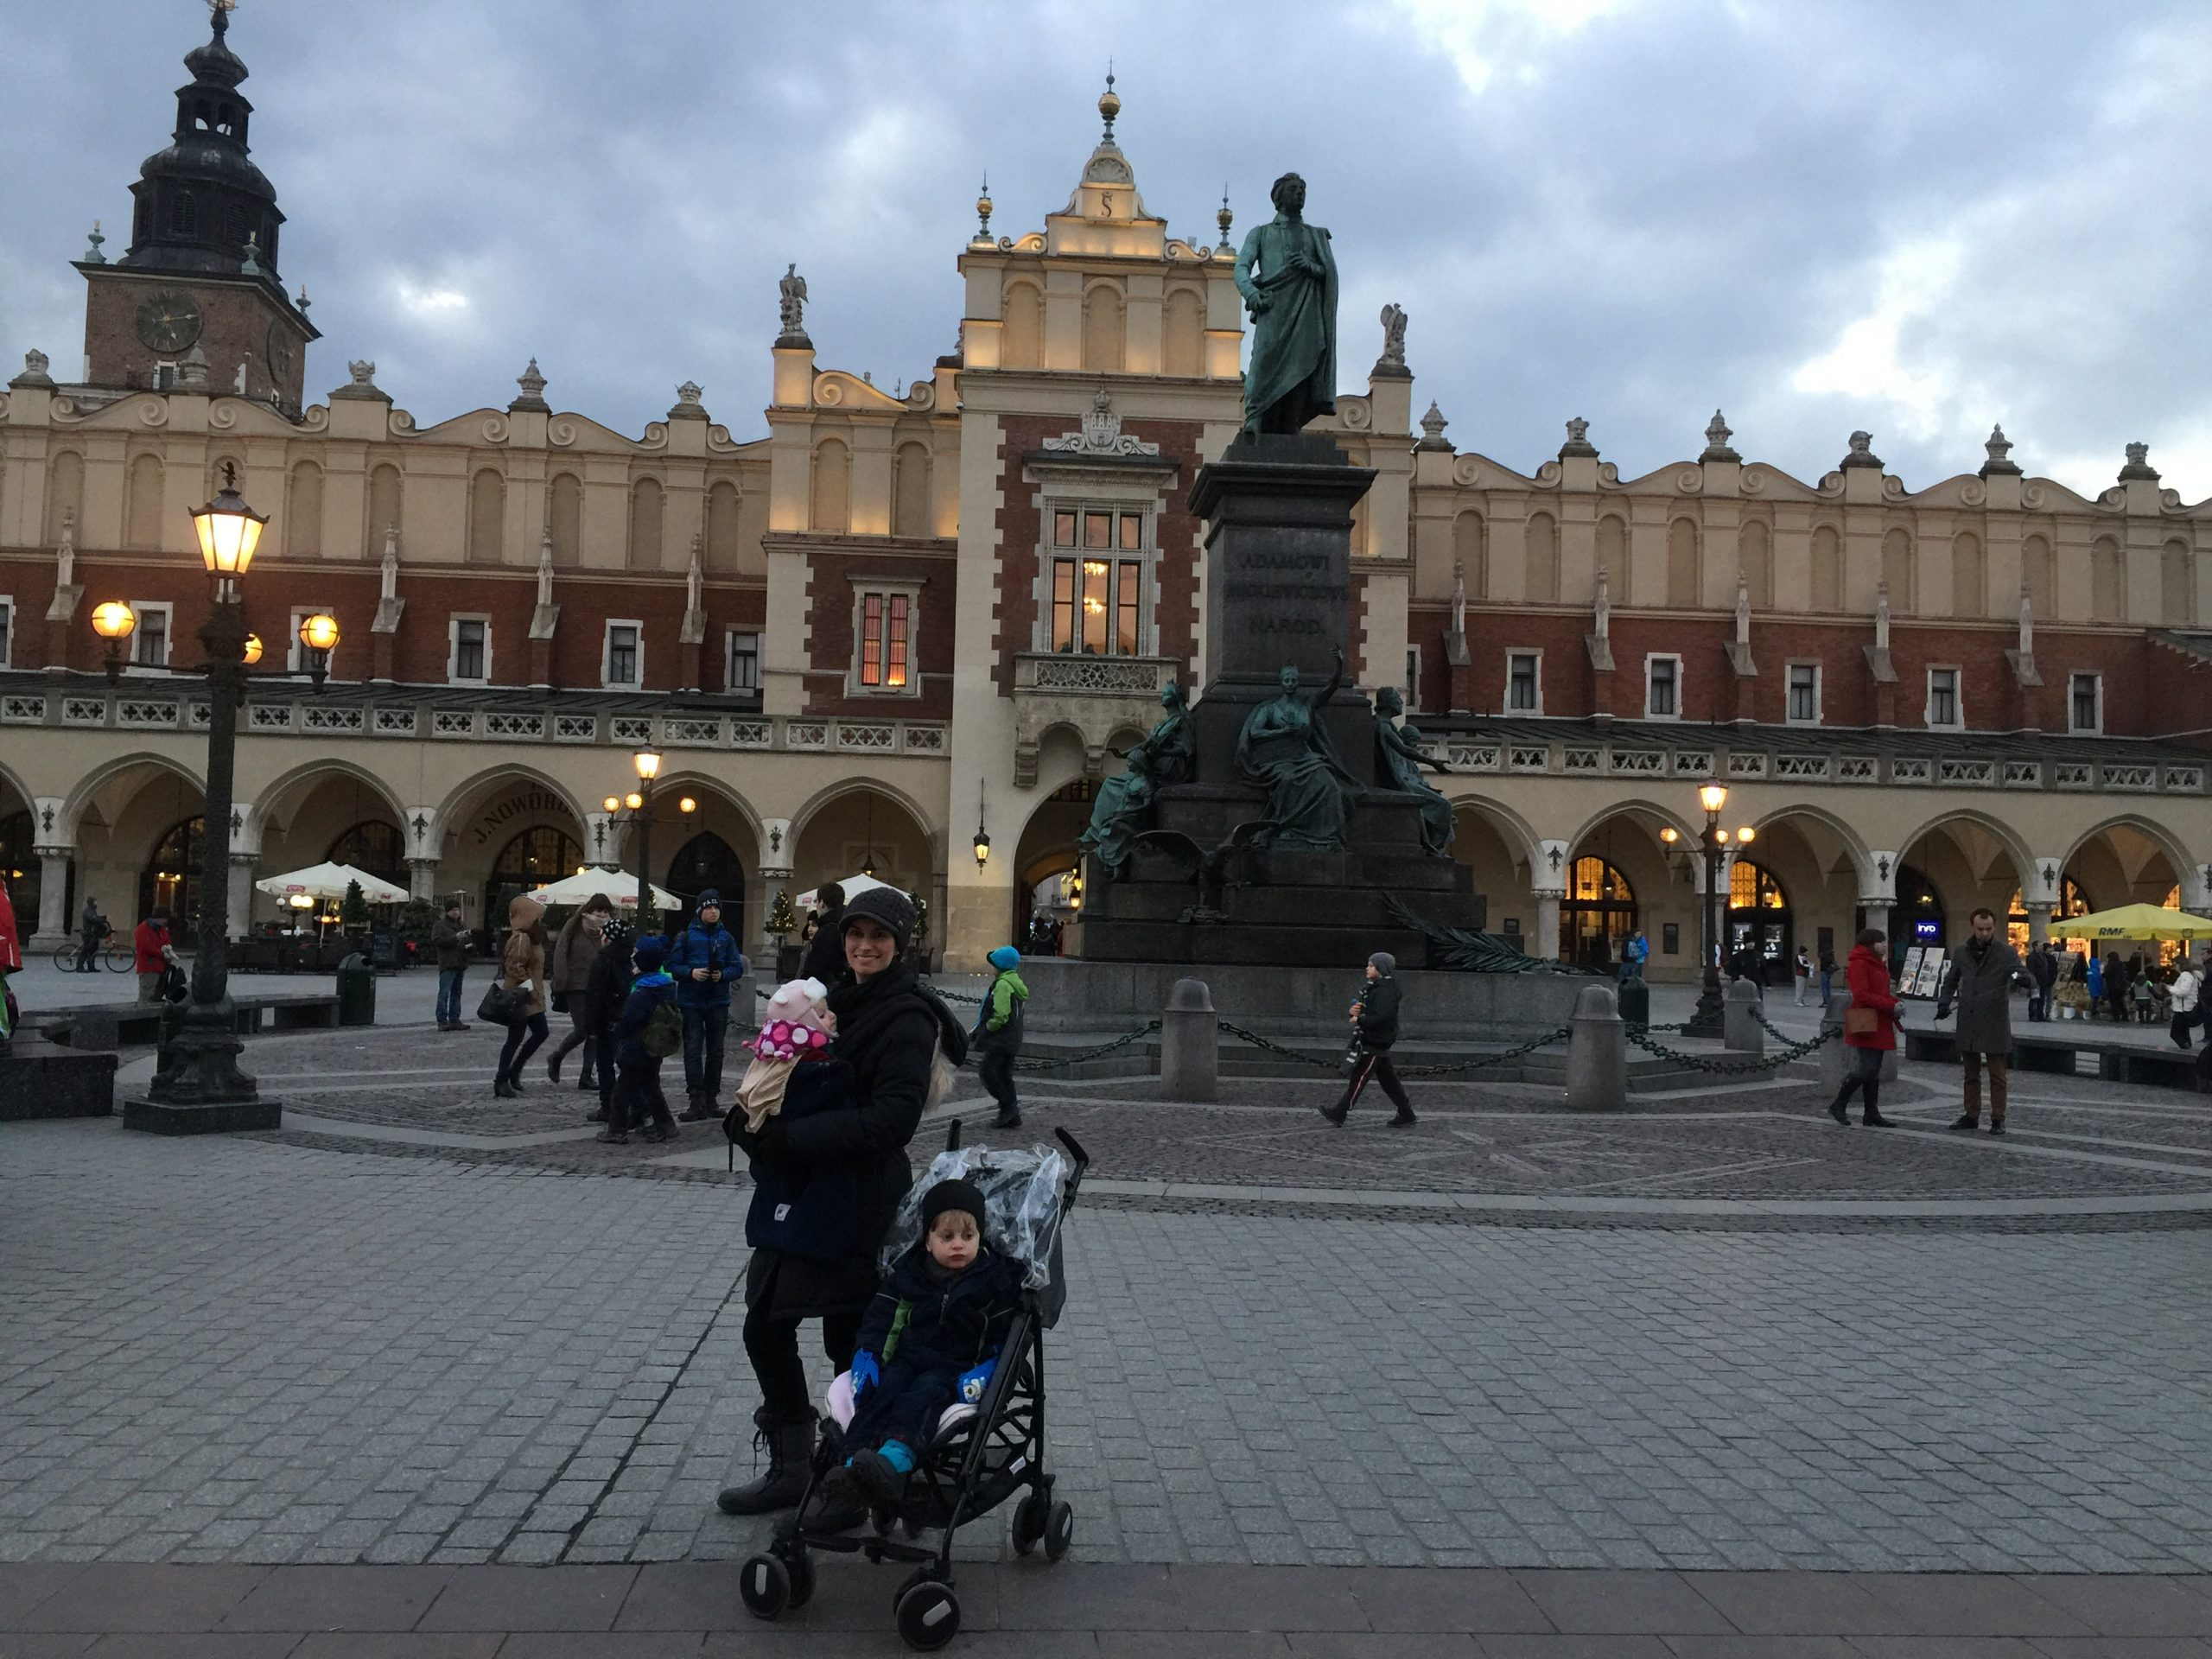 Mother and children standing in the main square of Krakow, Poland 2016